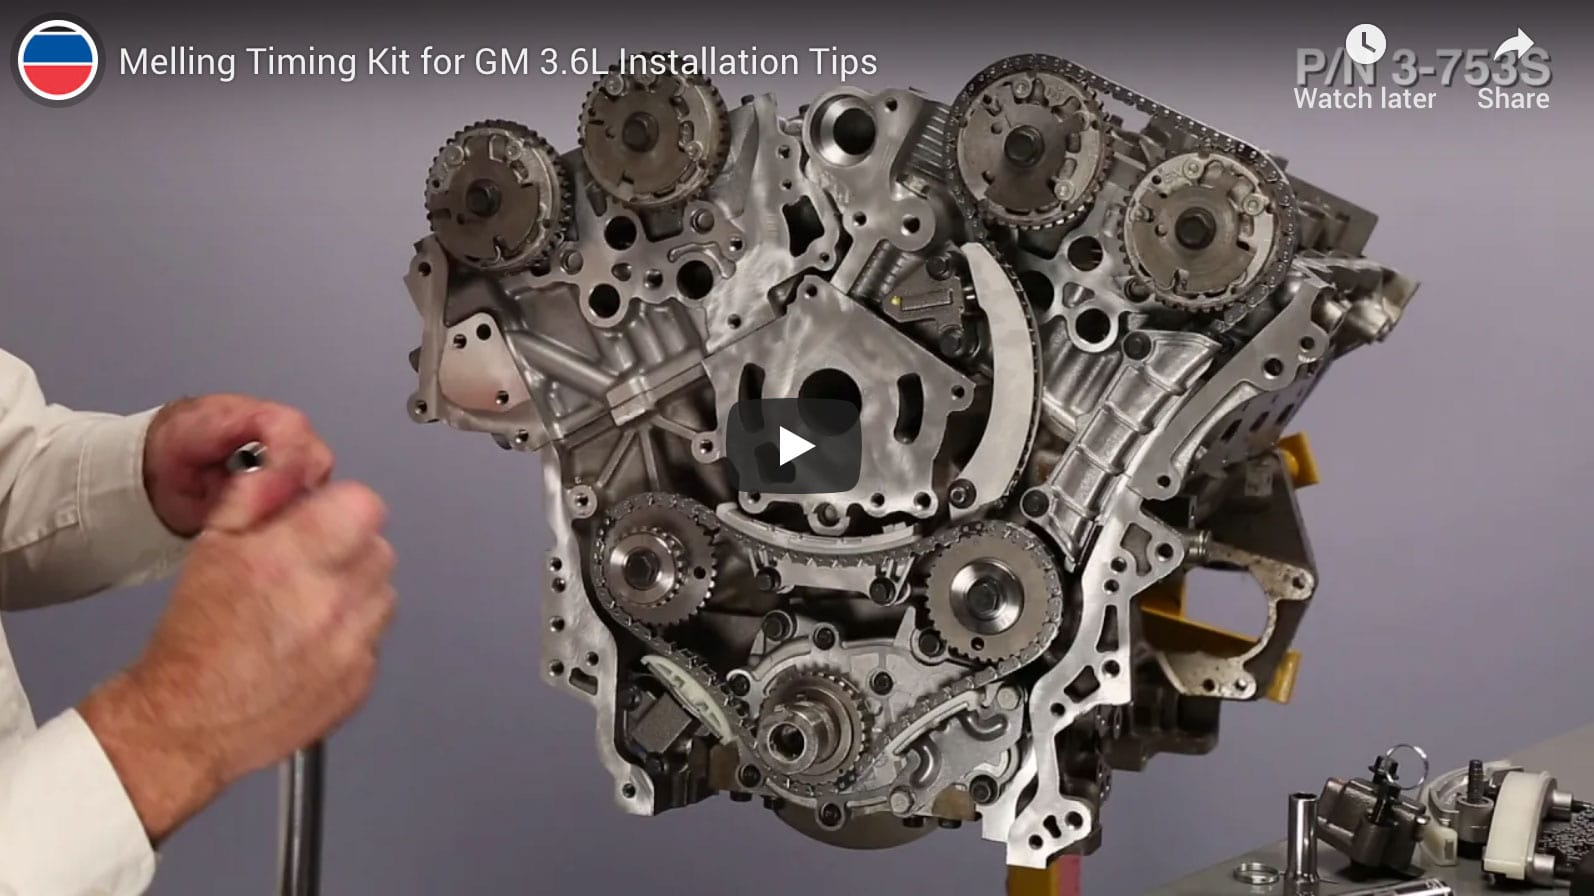 Installation Tips for GM 3.6L Melling Timing Kit Part # 3-753S